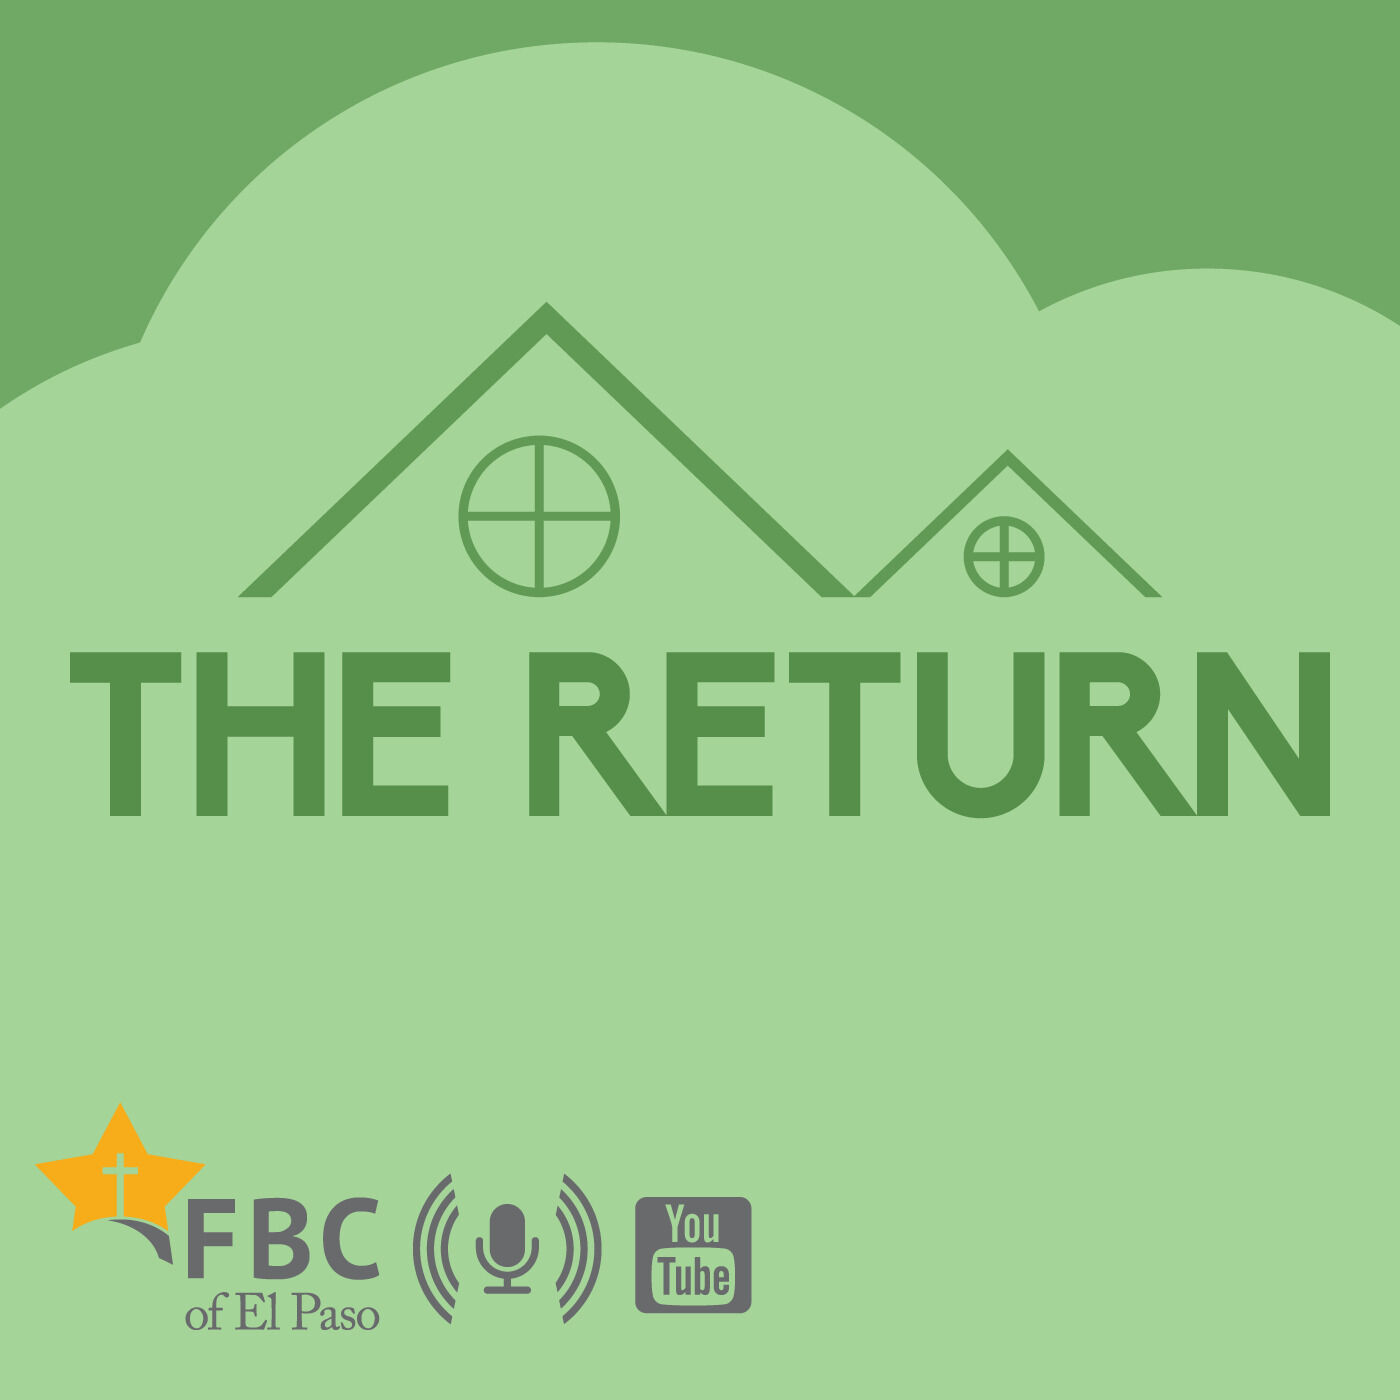 The Return: Make Yourself at Home (June 14, 2020)